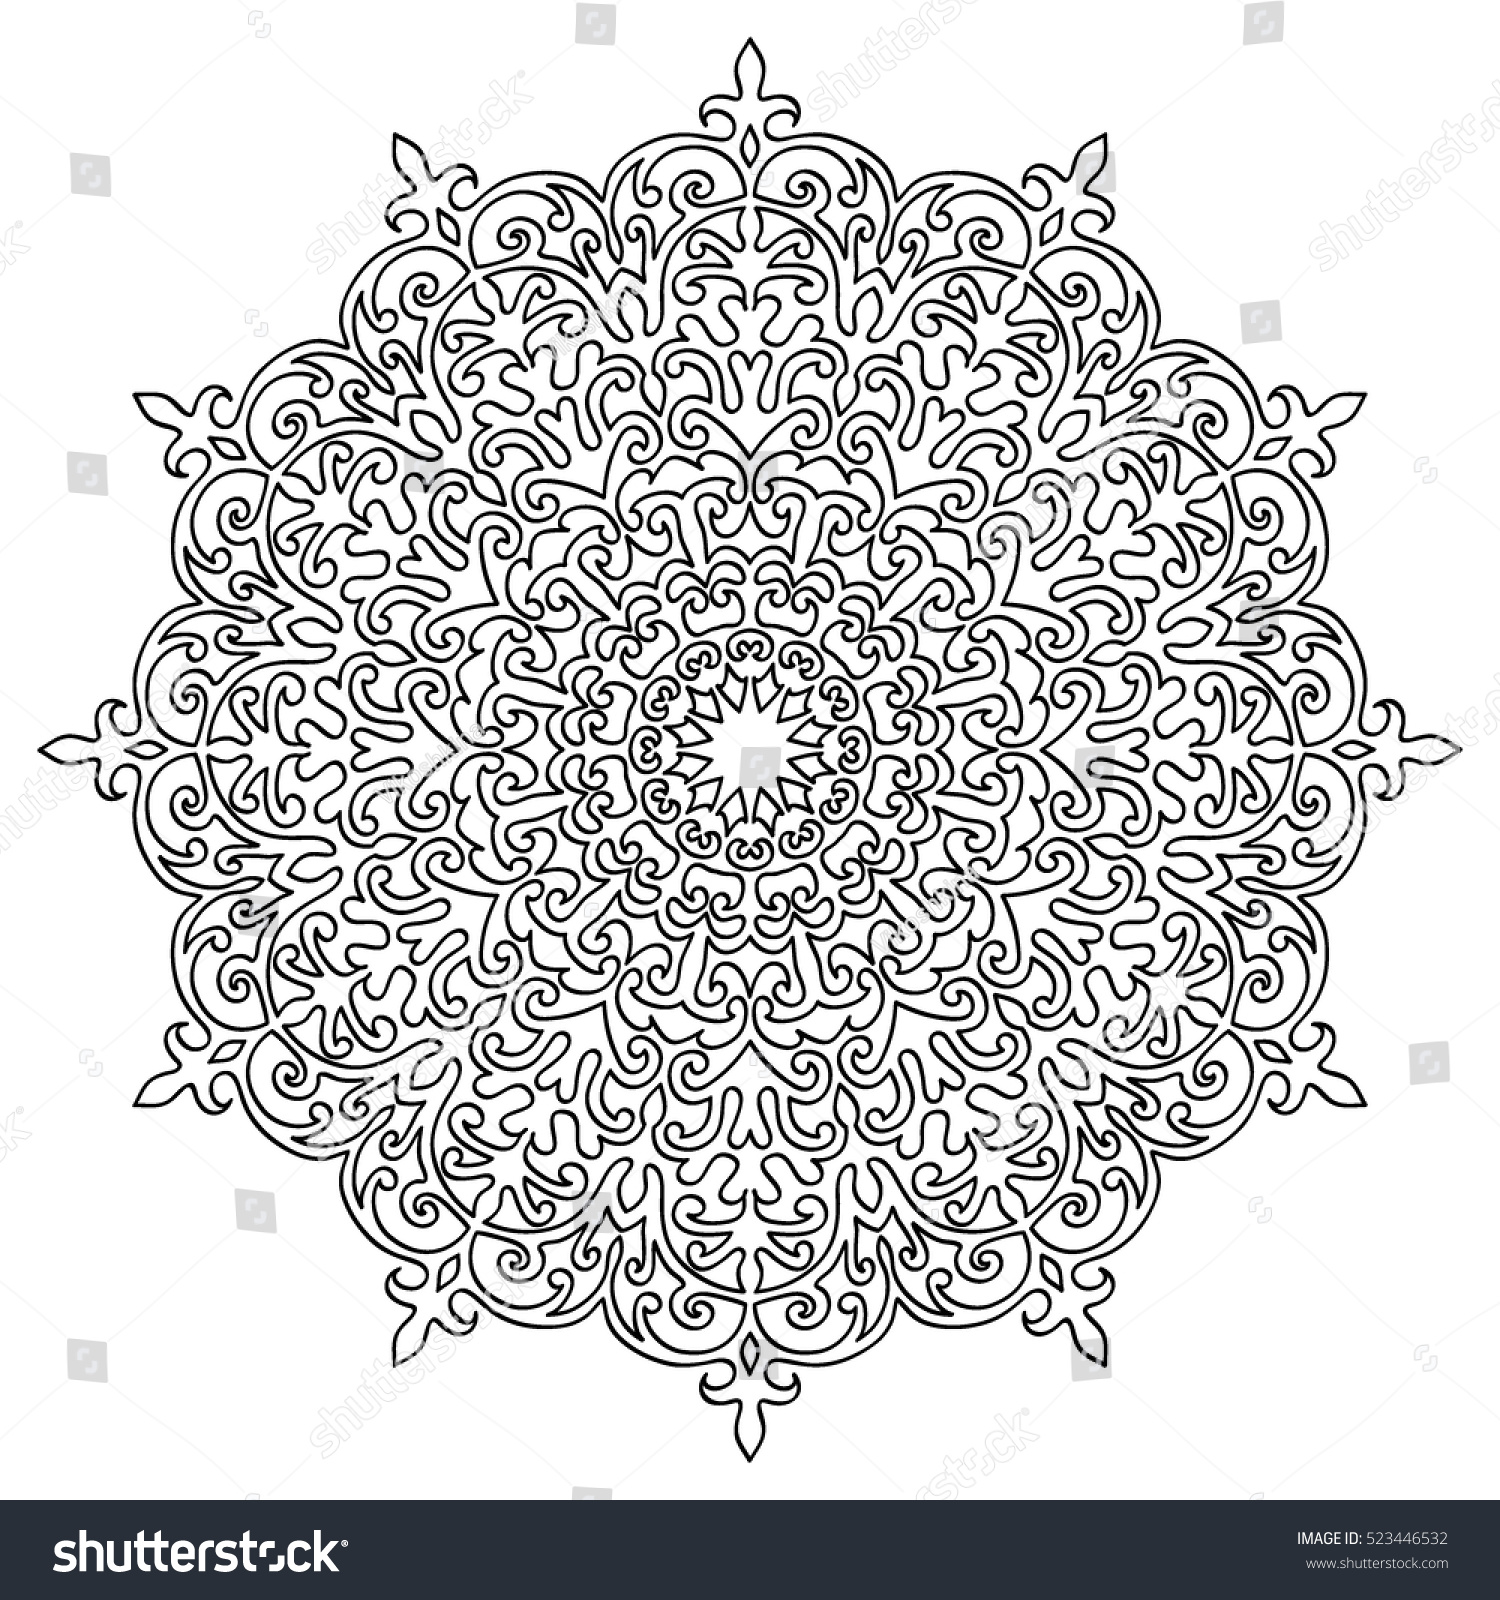 Adult Coloring Book Page Black White Stock Vector